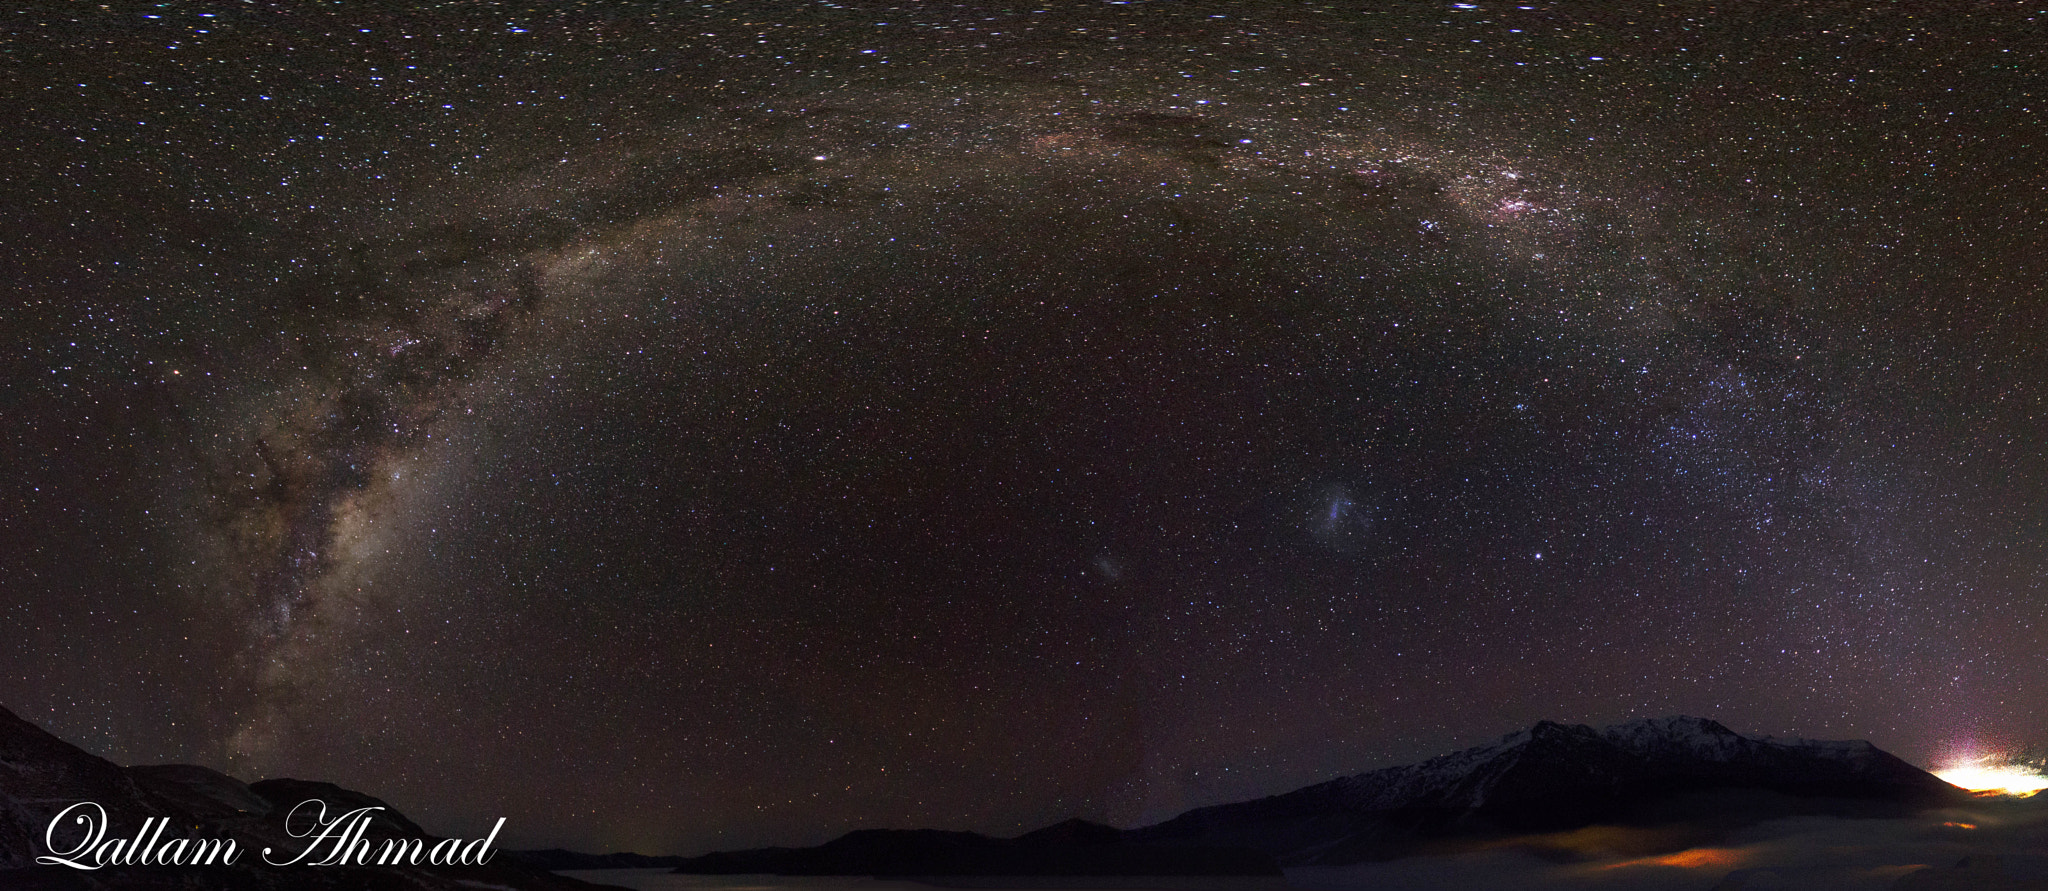 Photograph  Milky Way over Crown Range Road by Qallam Ahmad on 500px